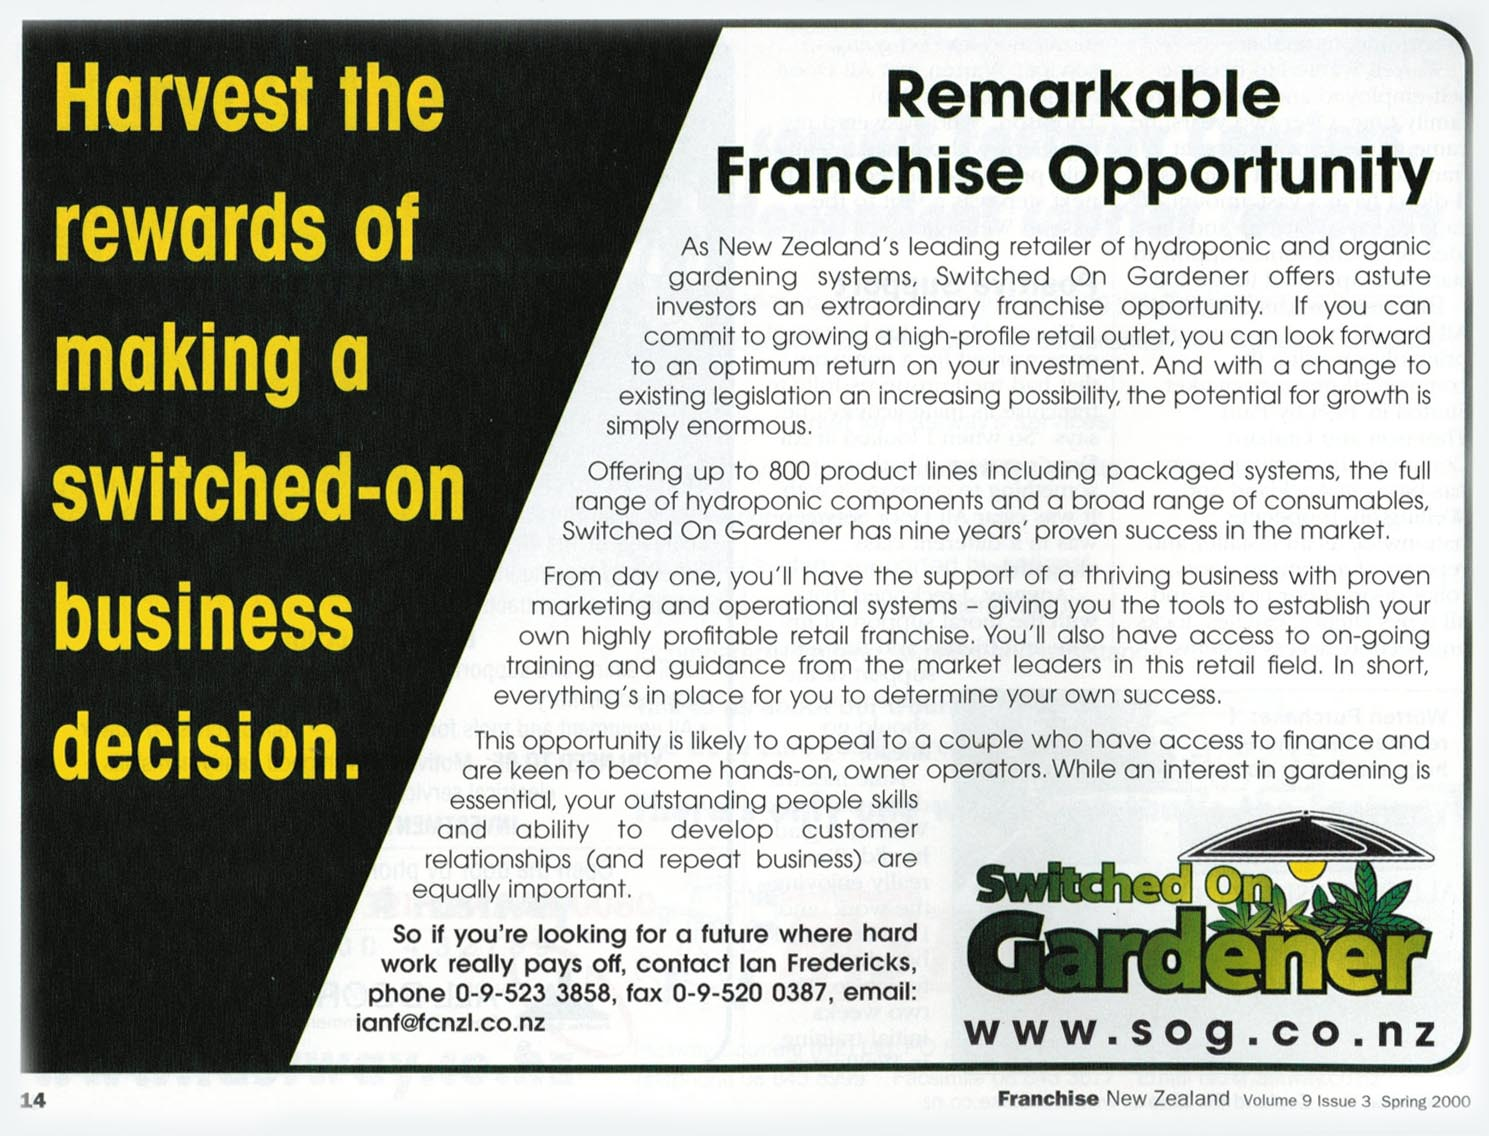 Ahead of its time? A franchise advert for Switched On Gardner from the turn of the century.